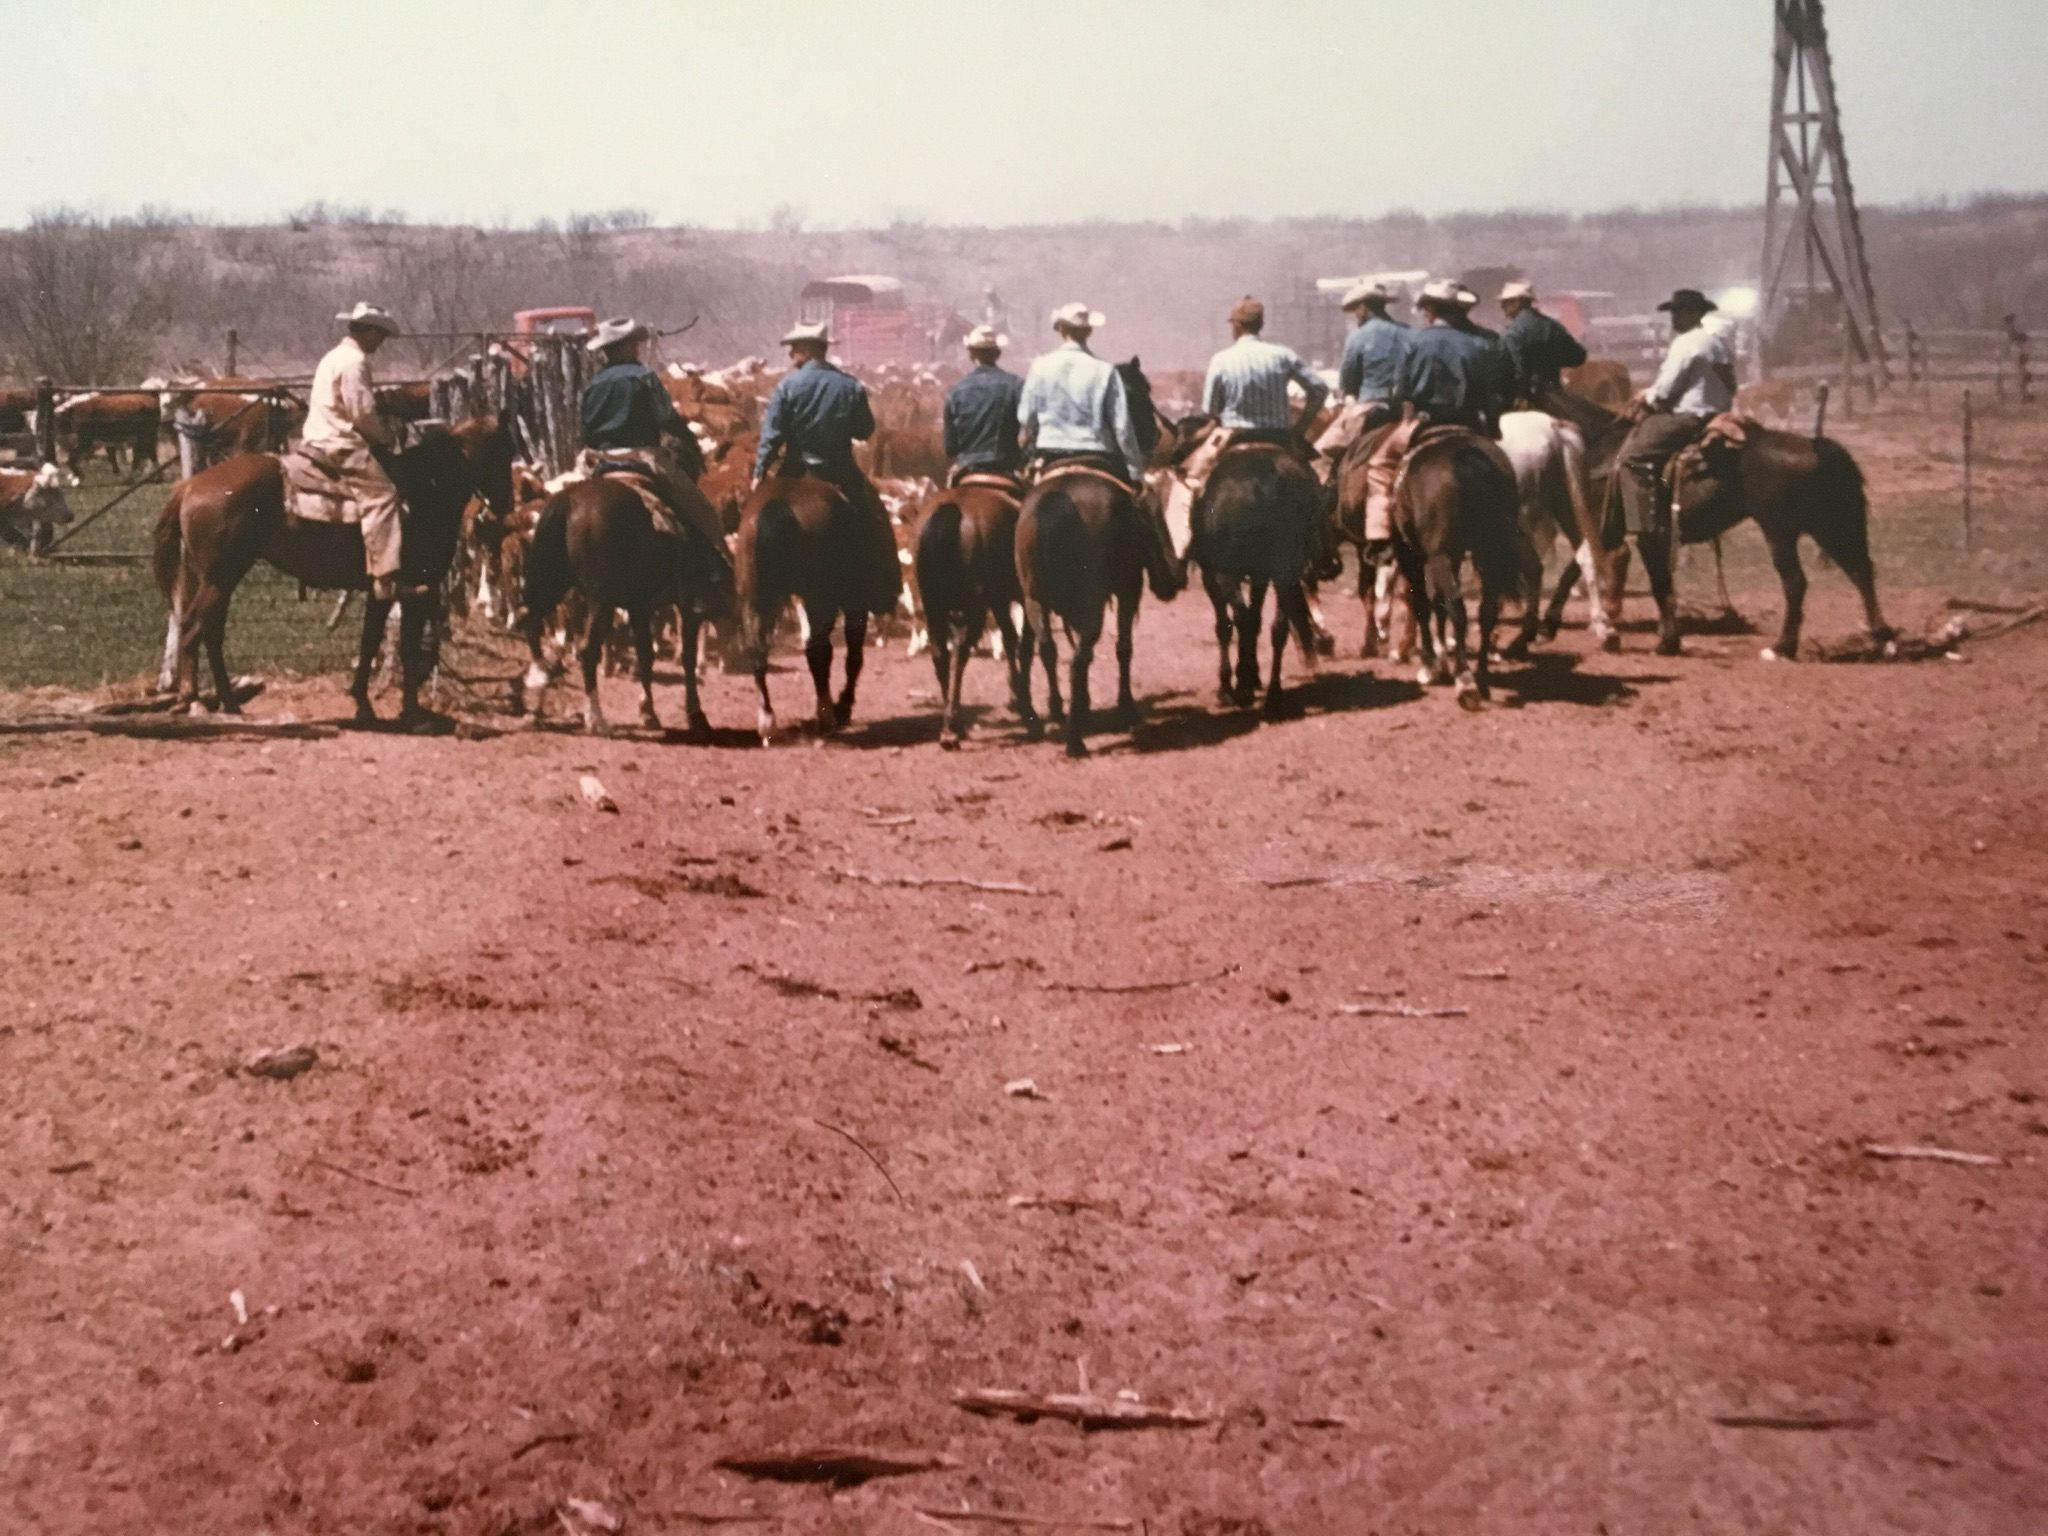 Texas cowboys herding cattle into pens. About 1964.